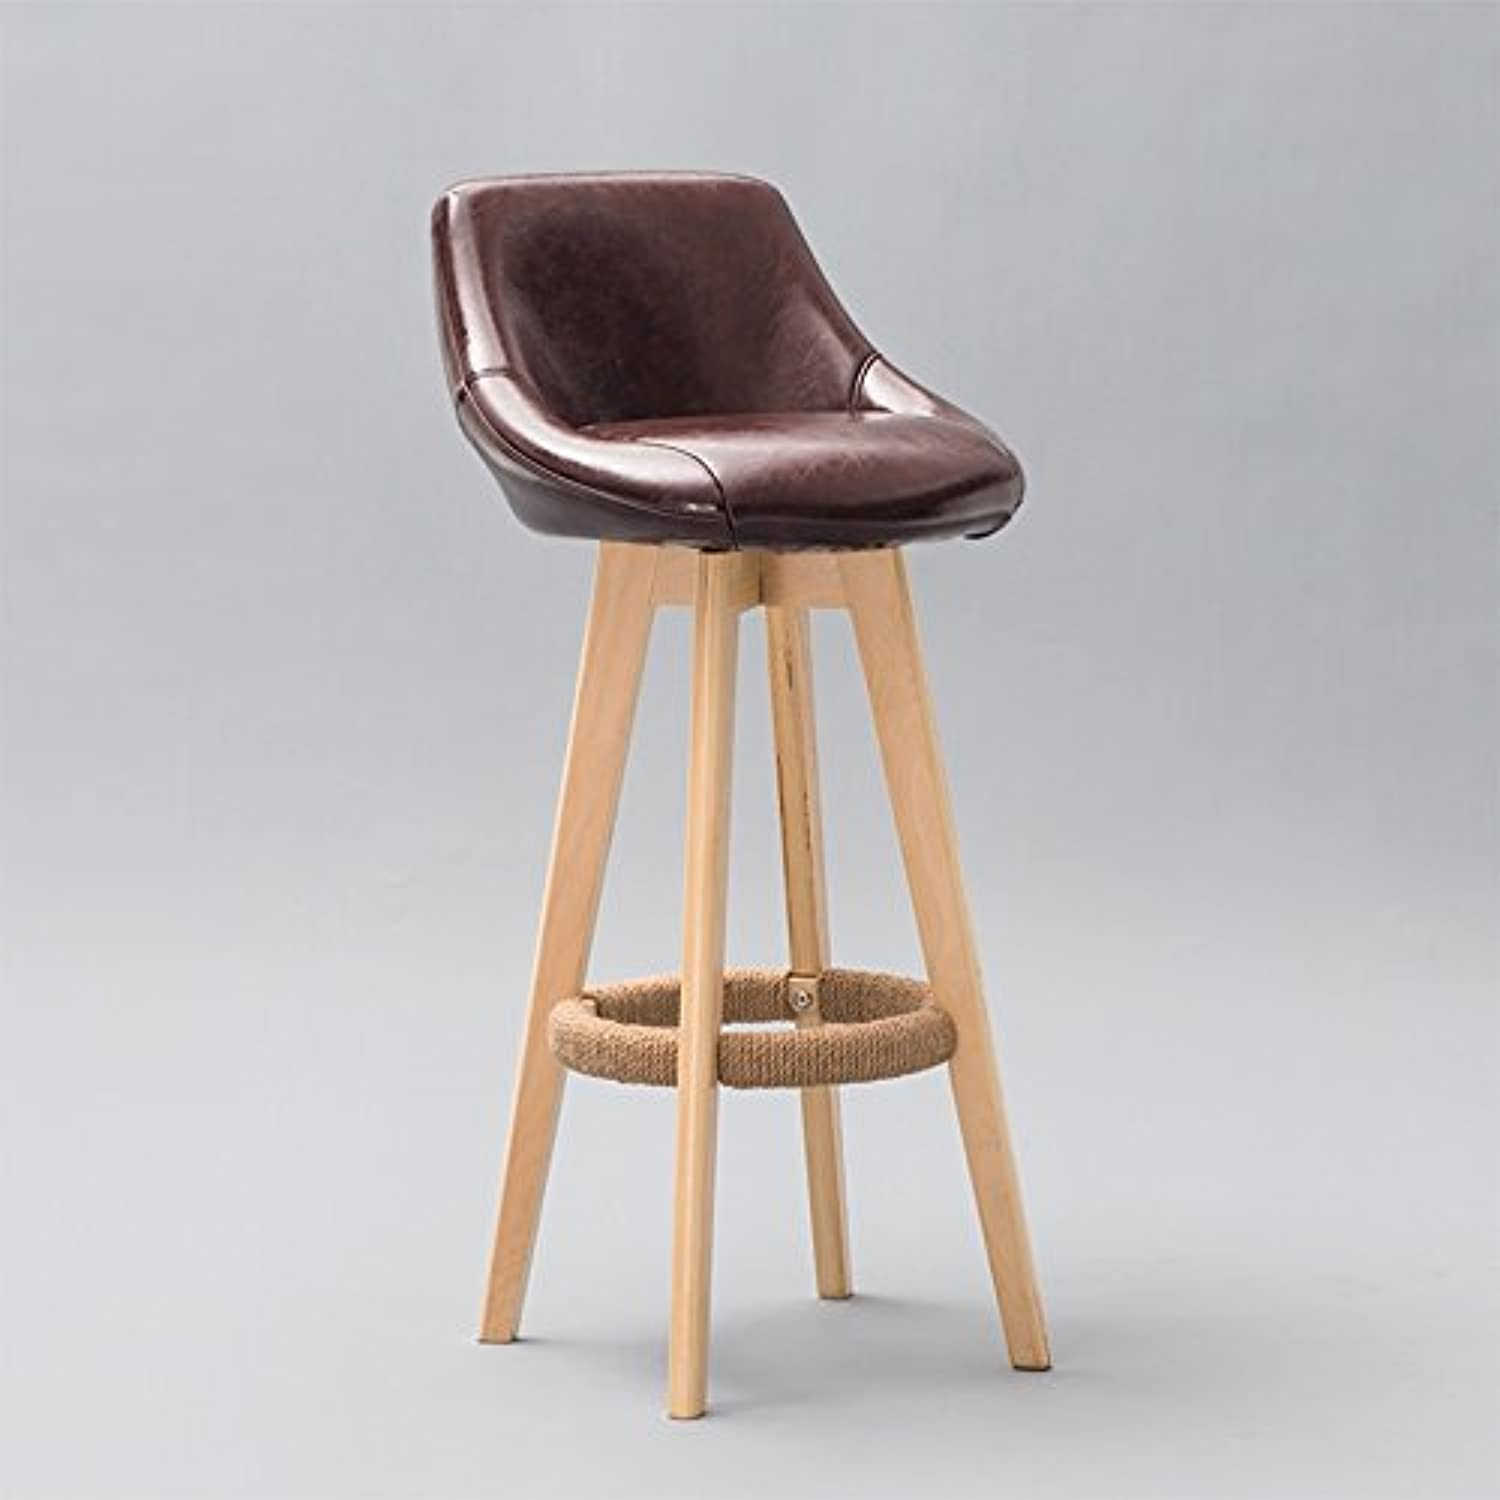 High Stools, Bar Stool Cafe Western Restaurant Front Desk Kitchen Chair Solid Wood Vintage with Backrest Chair (44  44  86CM)